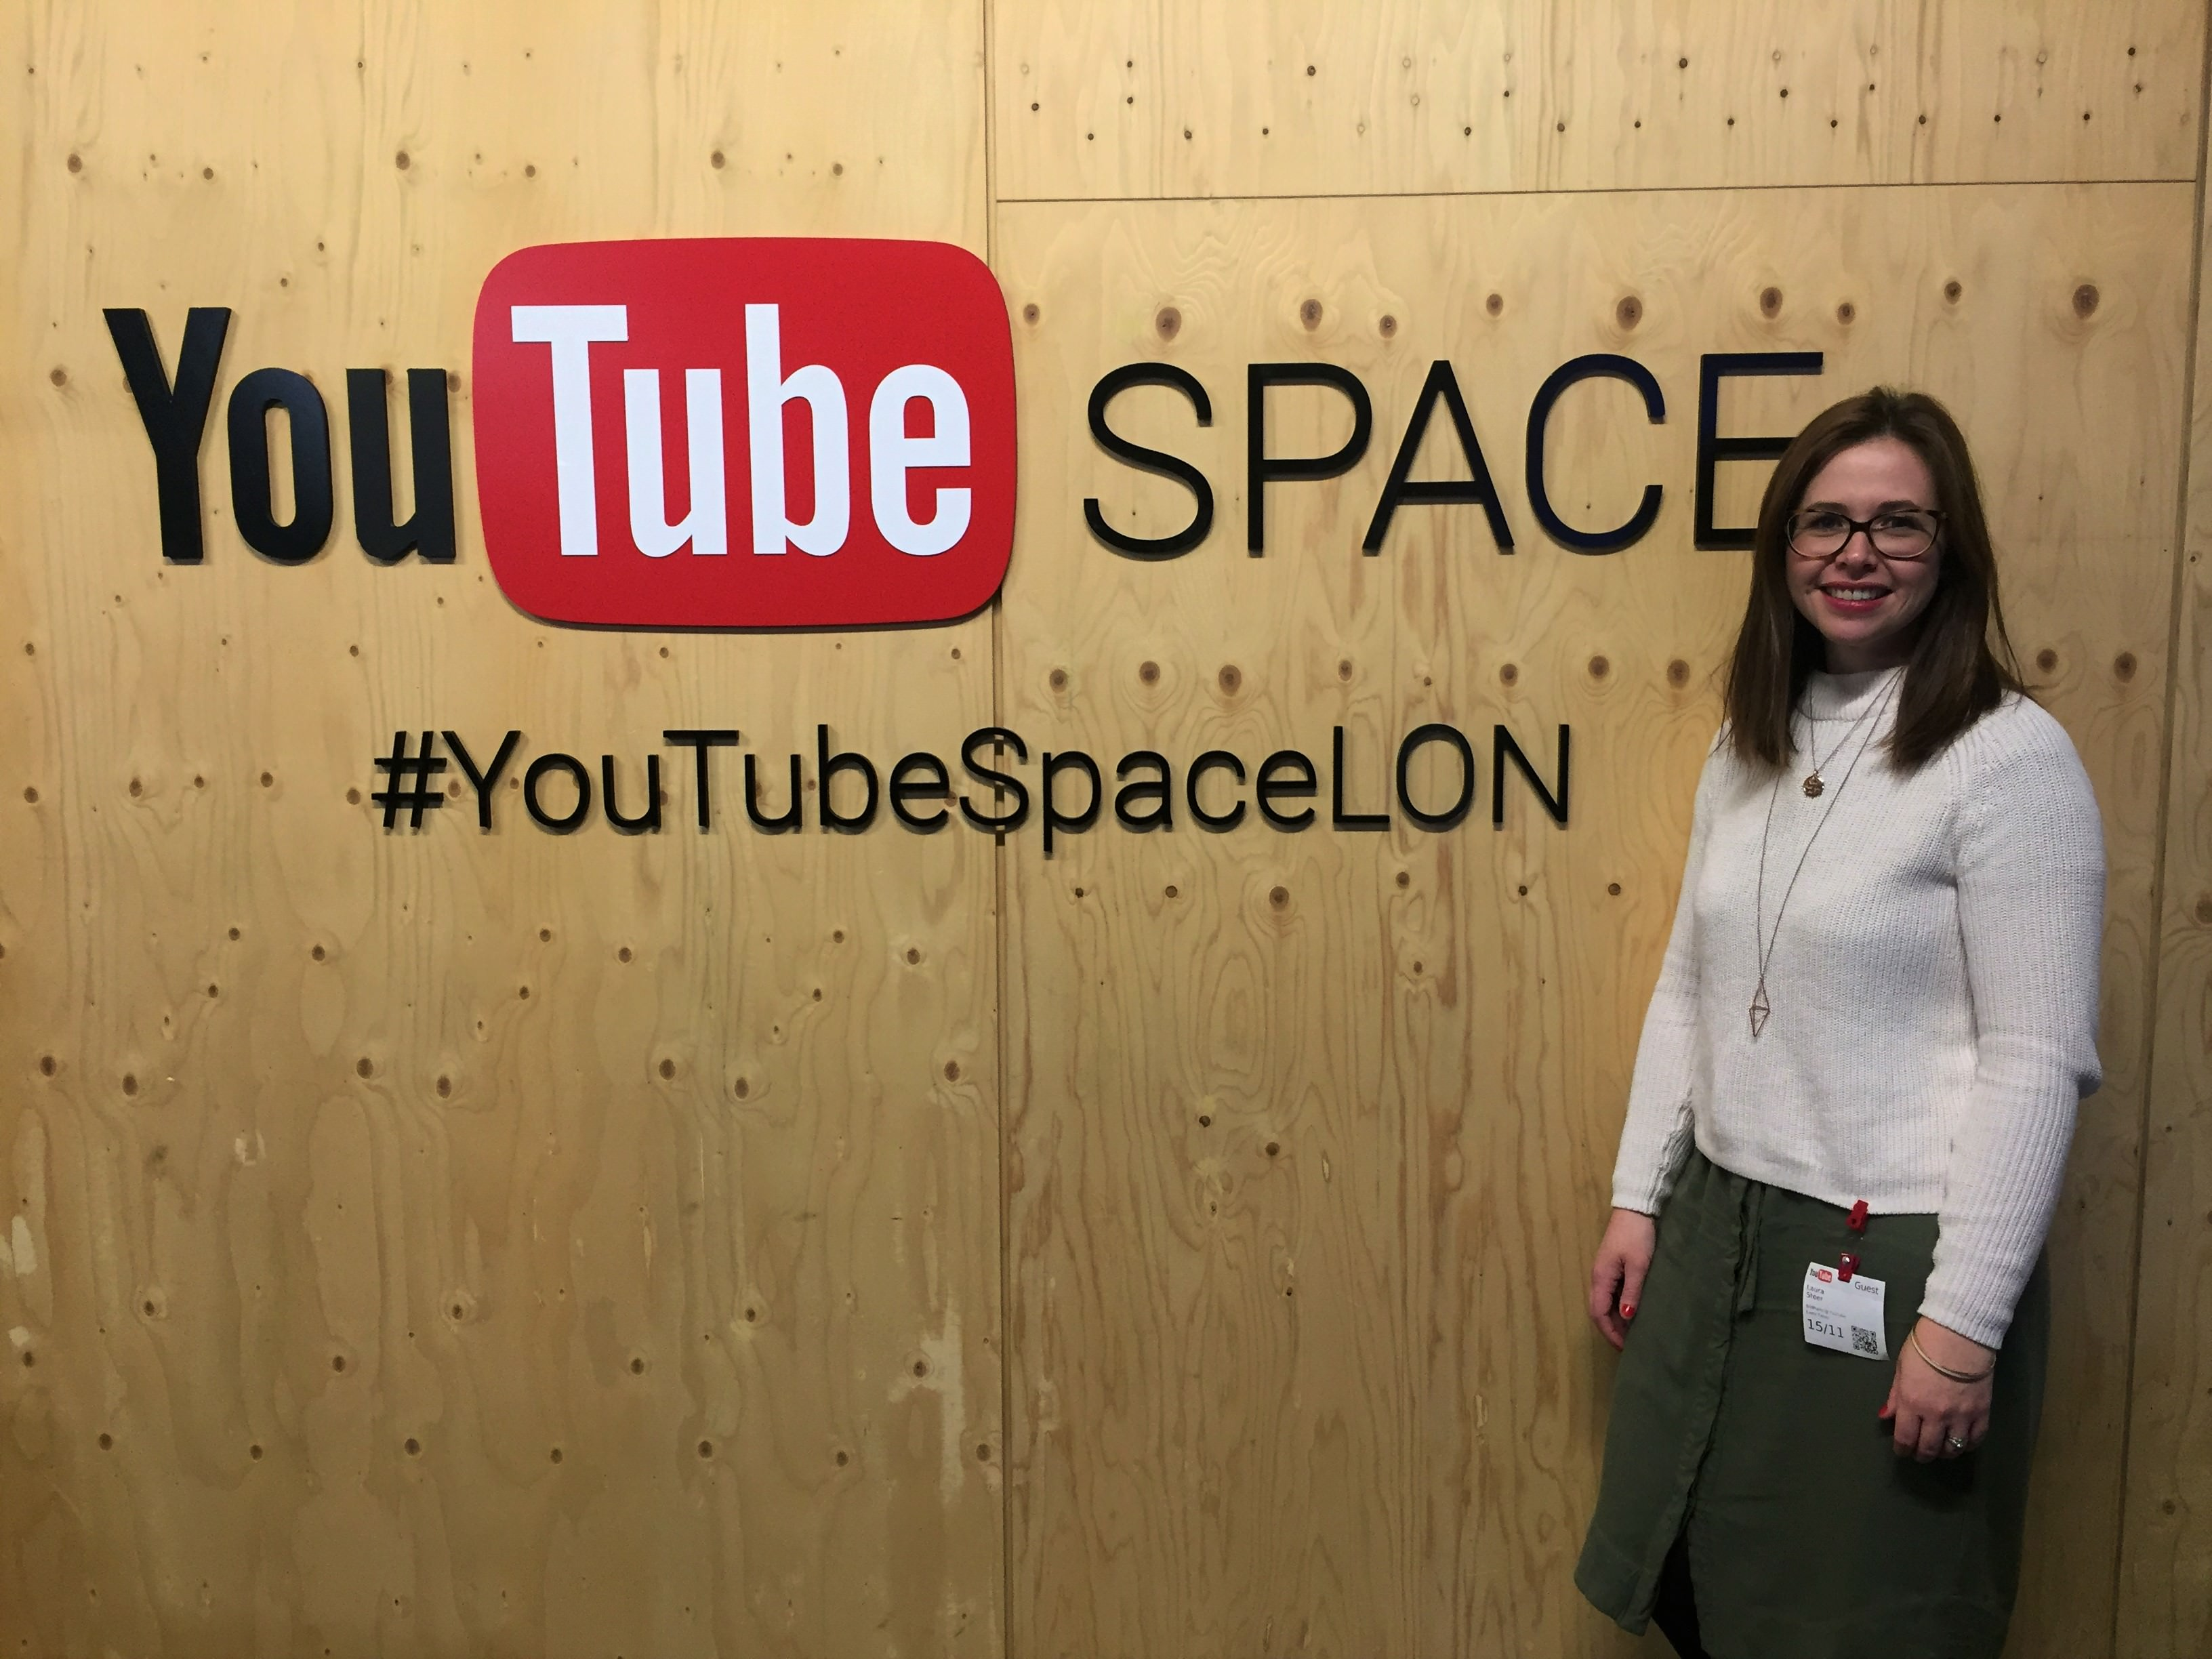 YouTube Space London and Missing my girls